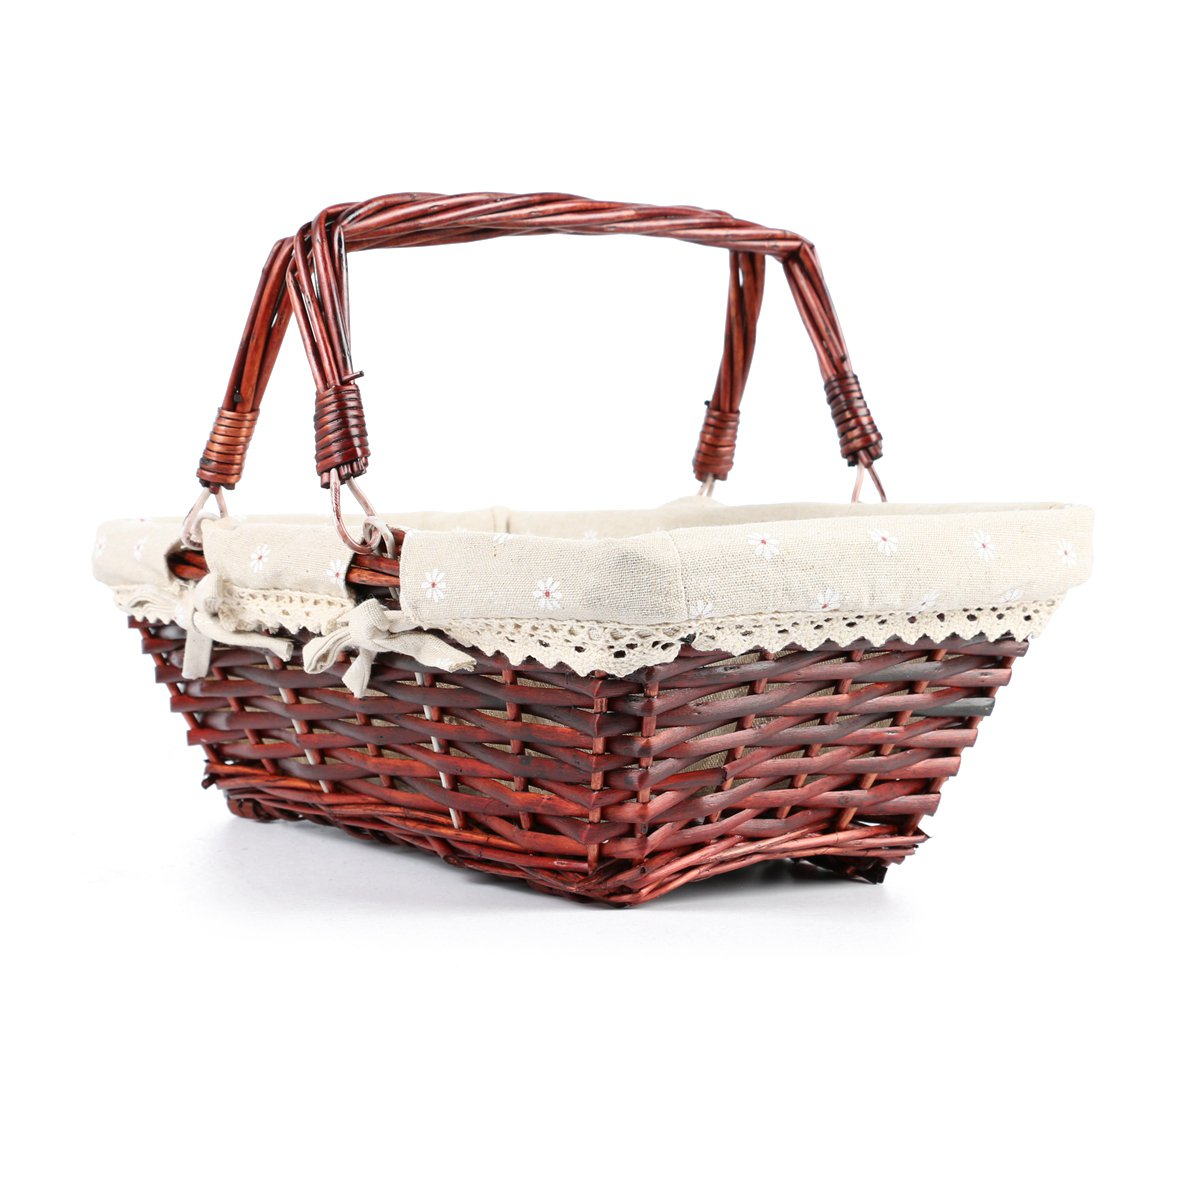 MEIEM Easter Basket Gift Basket Wicker Woven Picnic Basket with Double Folding Handles Rectangular Willow Basket (Brown)